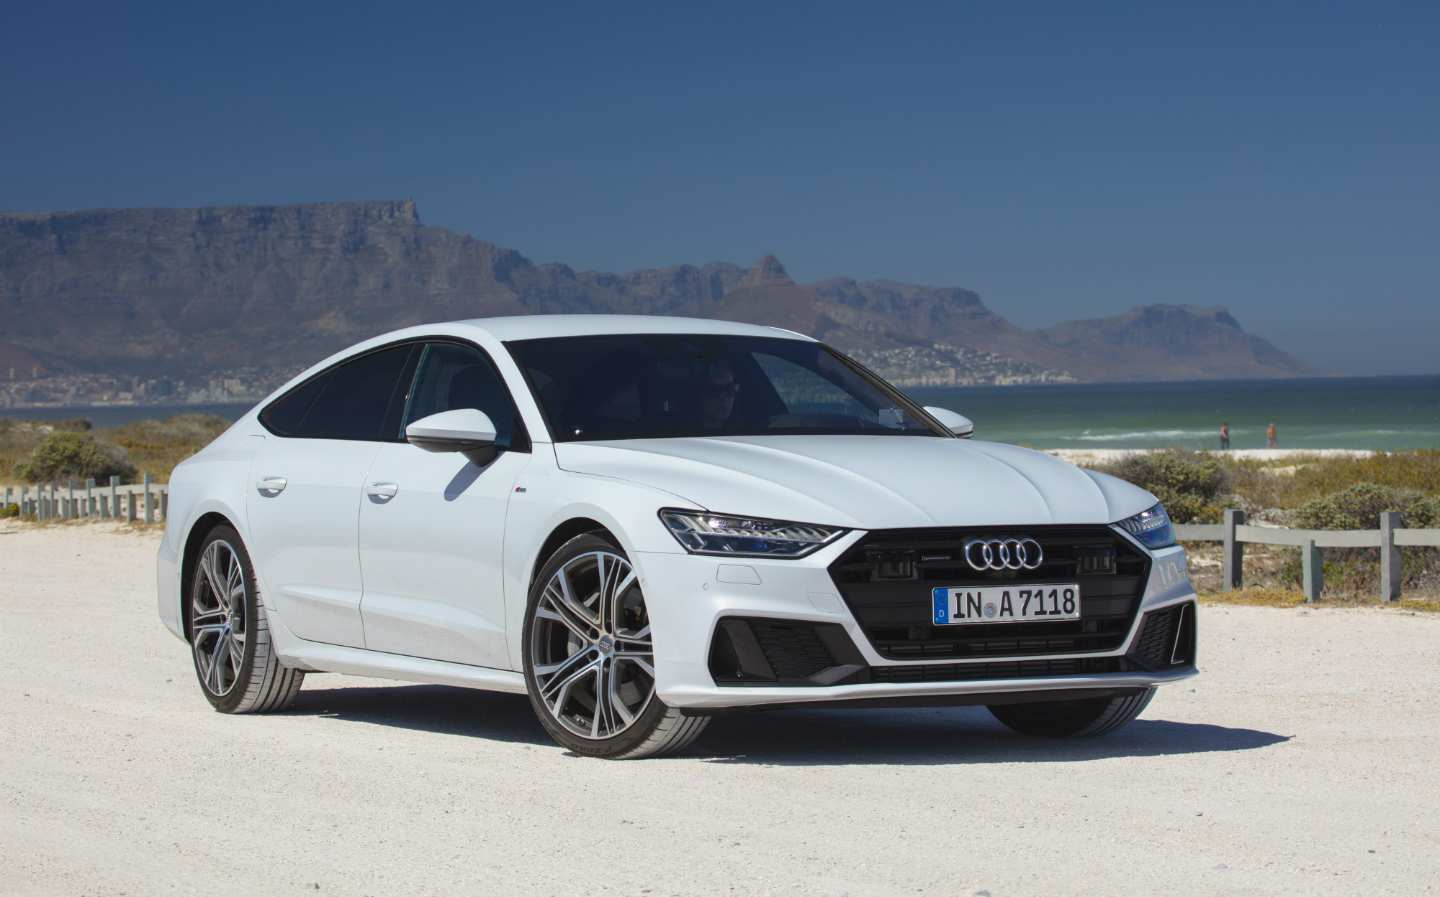 77 All New 2019 Audi S7 Price Design And Review